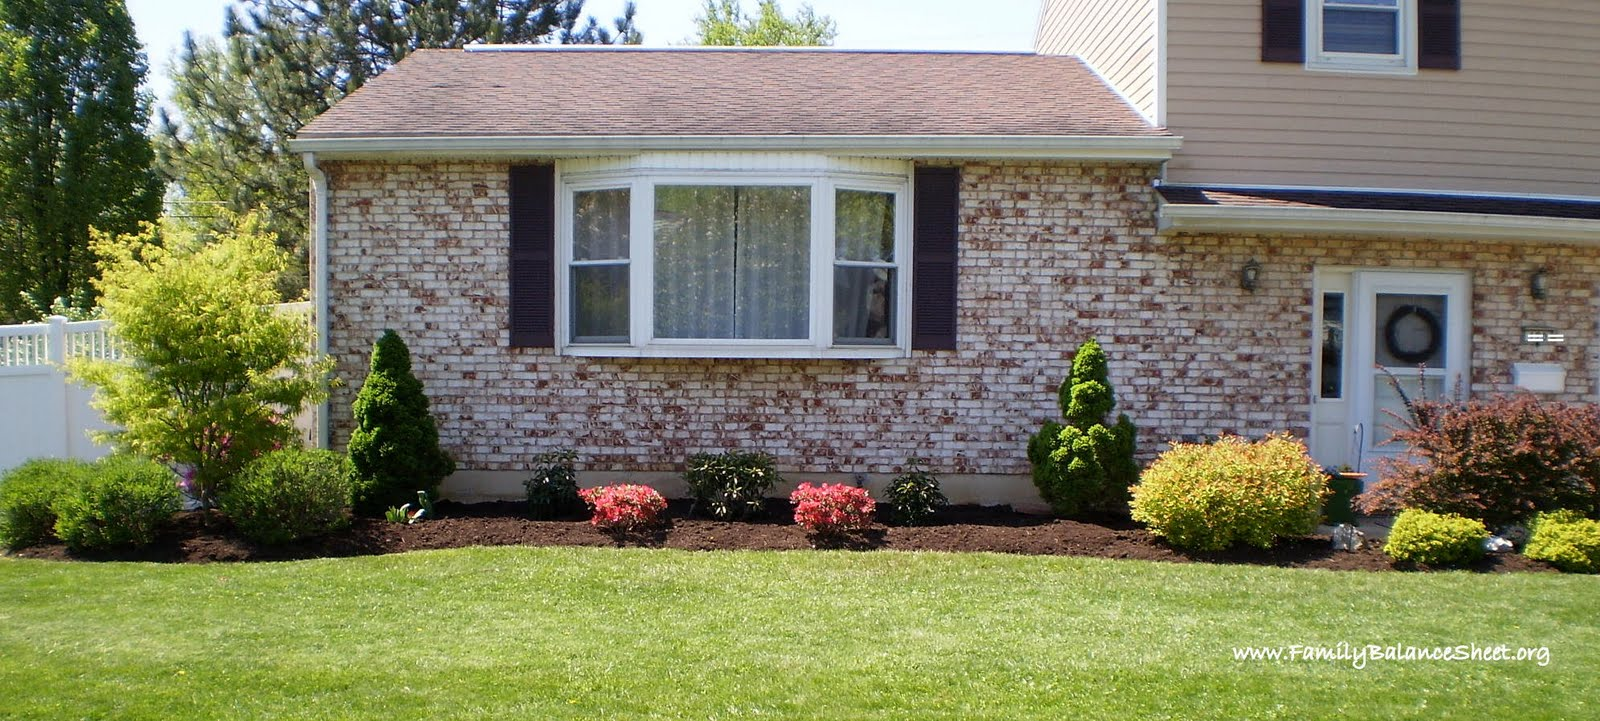 15 tips to help you design your front yard save money too for Pictures of front yard landscapes